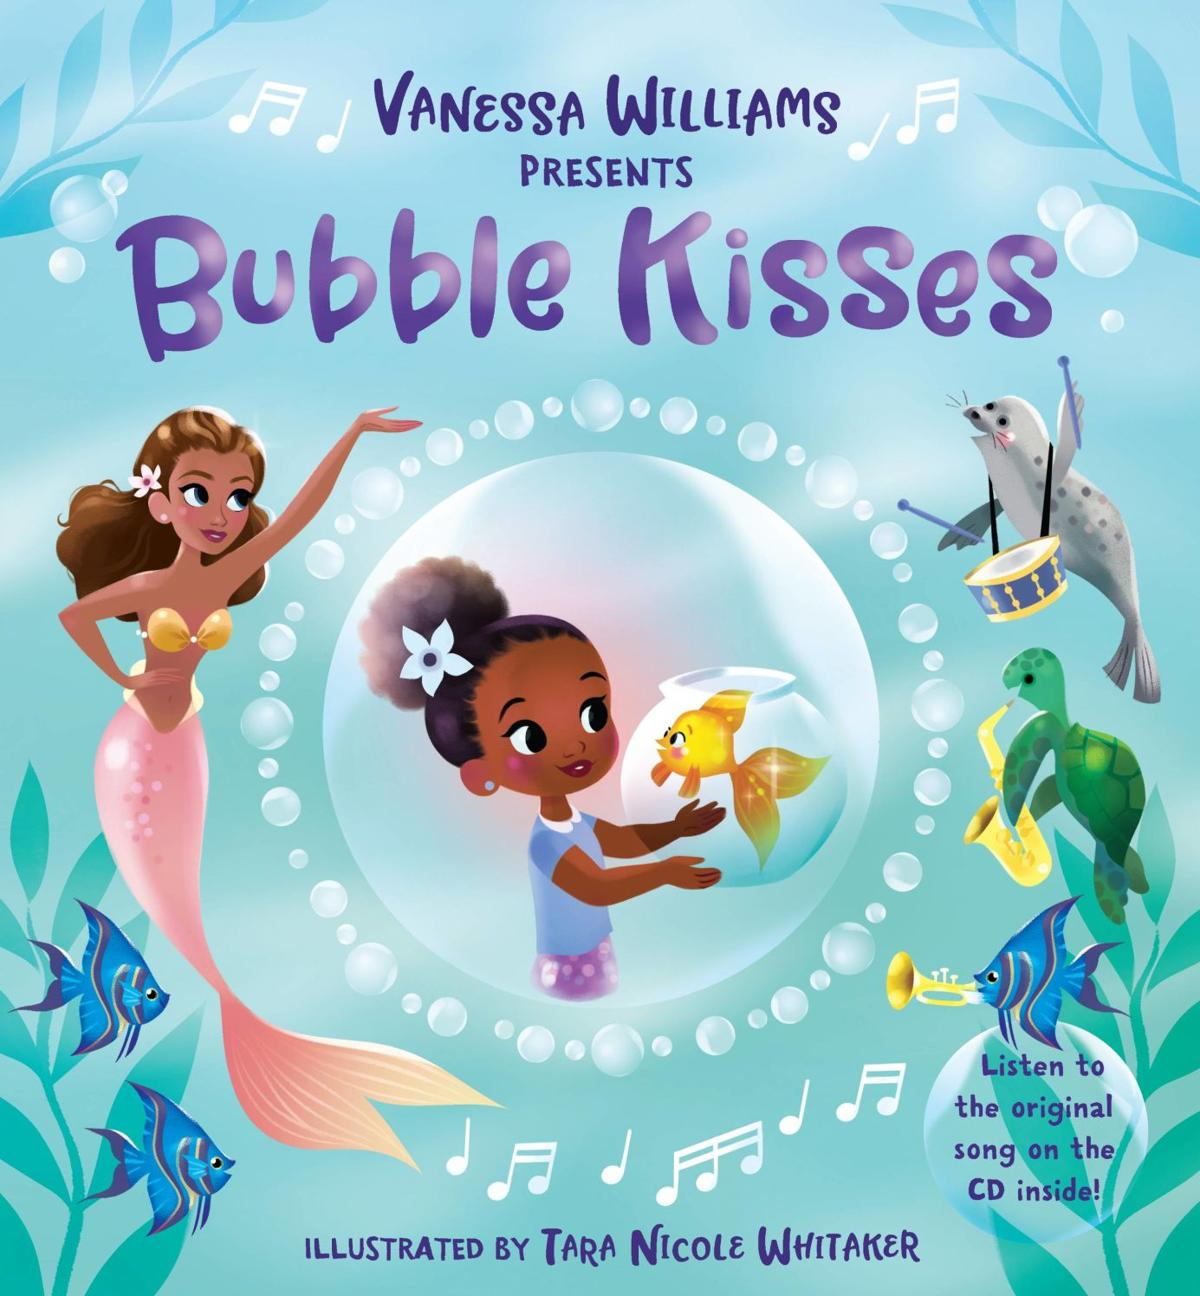 'Bubble Kisses' perfect for toddlers – don't forget the music